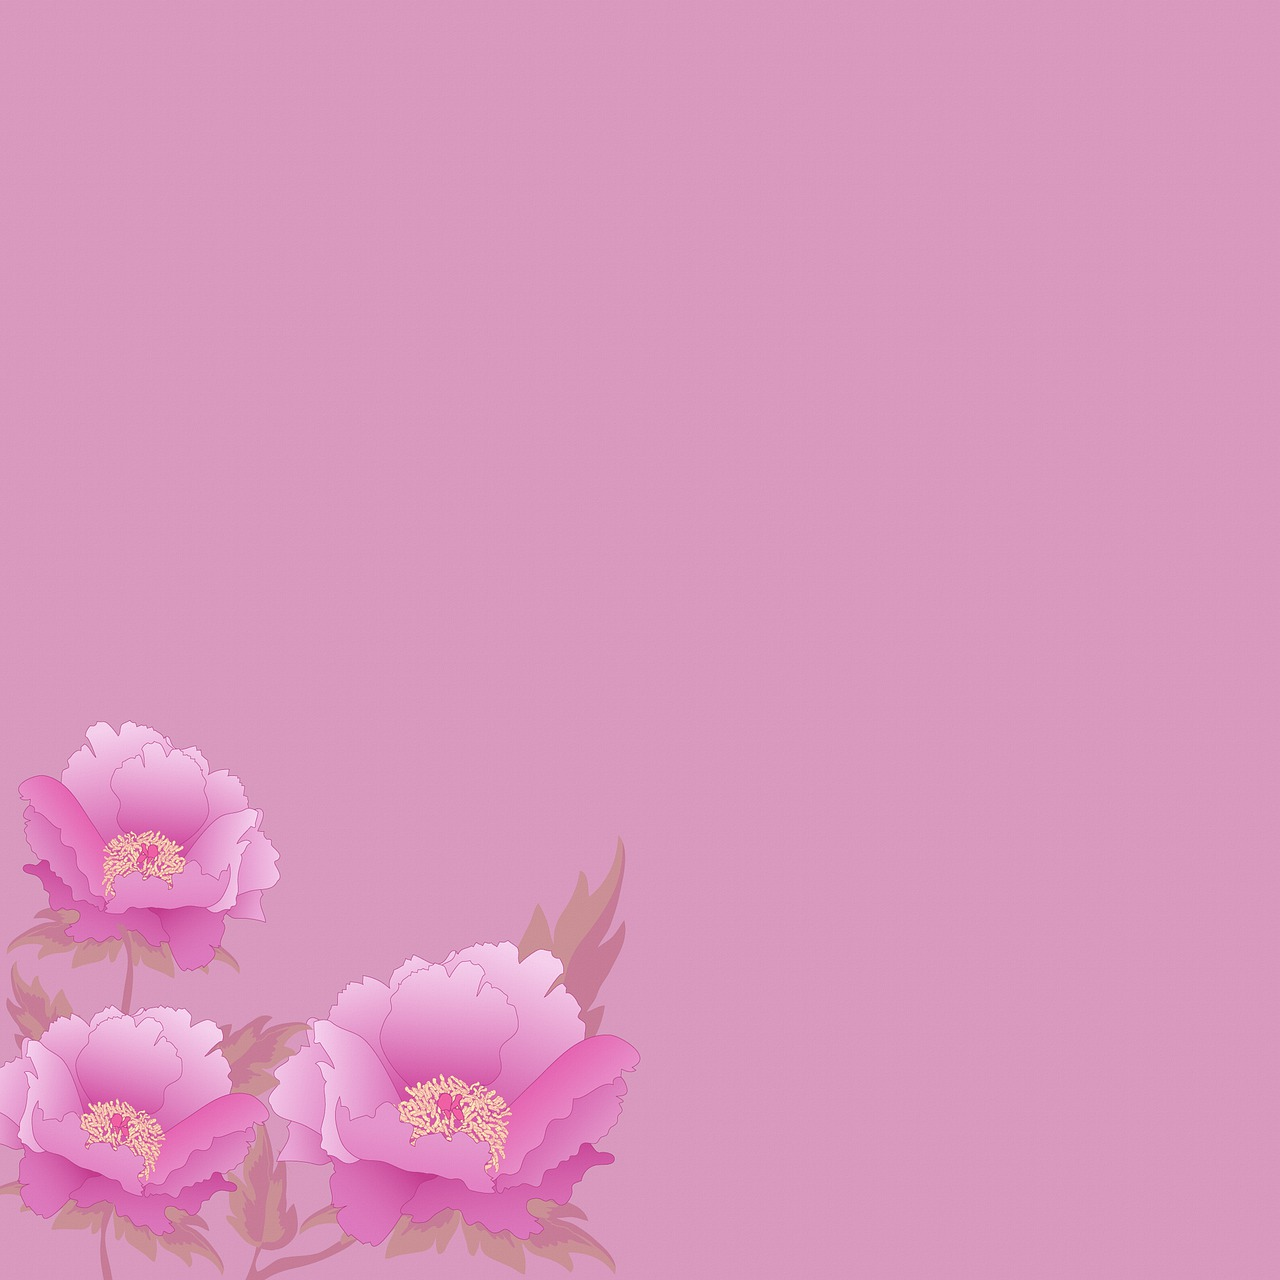 Floral Background Pink Peonies Free Image On Pixabay